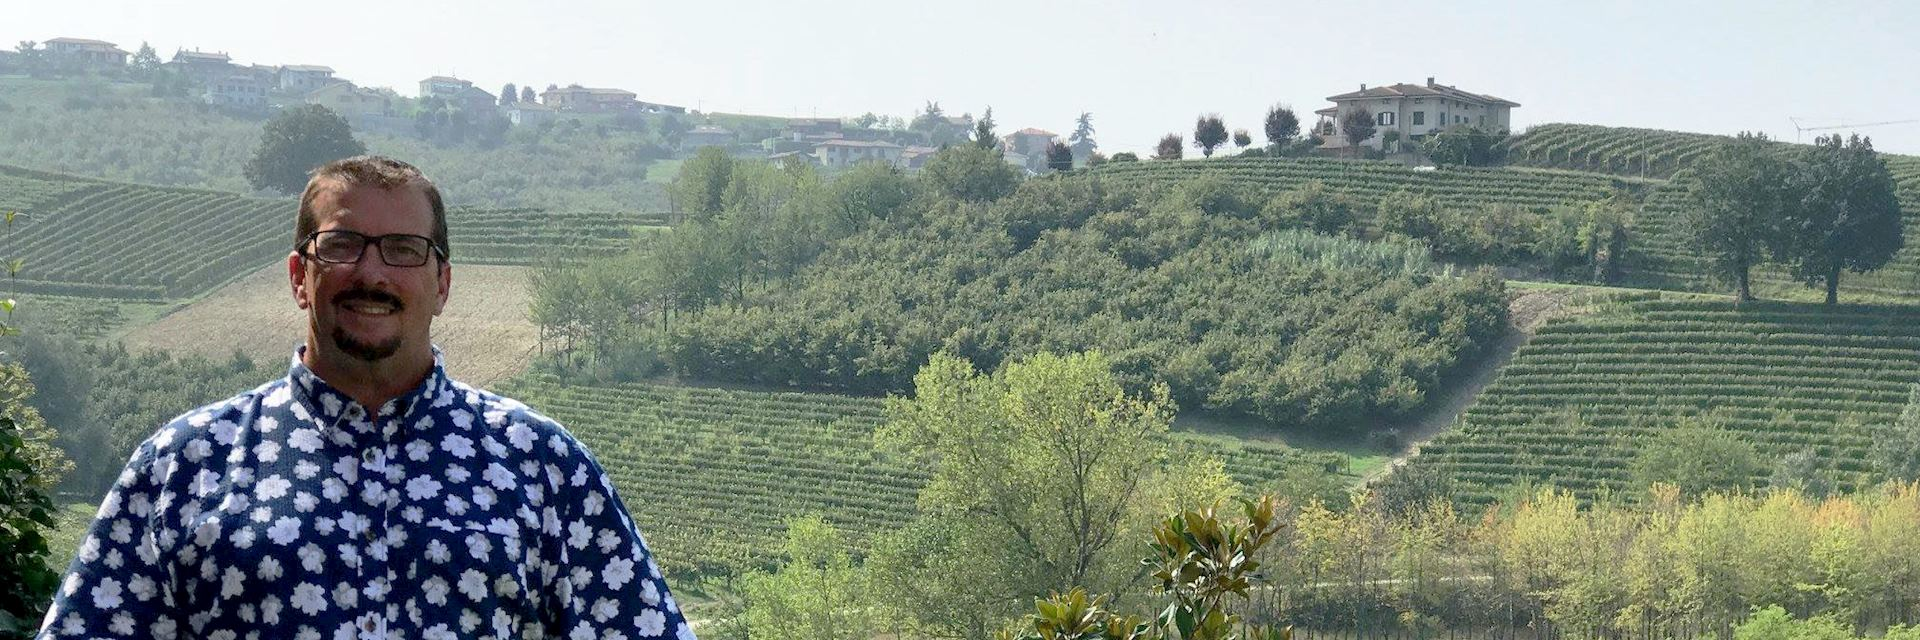 Joe at a vineyard in the Piedmont region, Italy